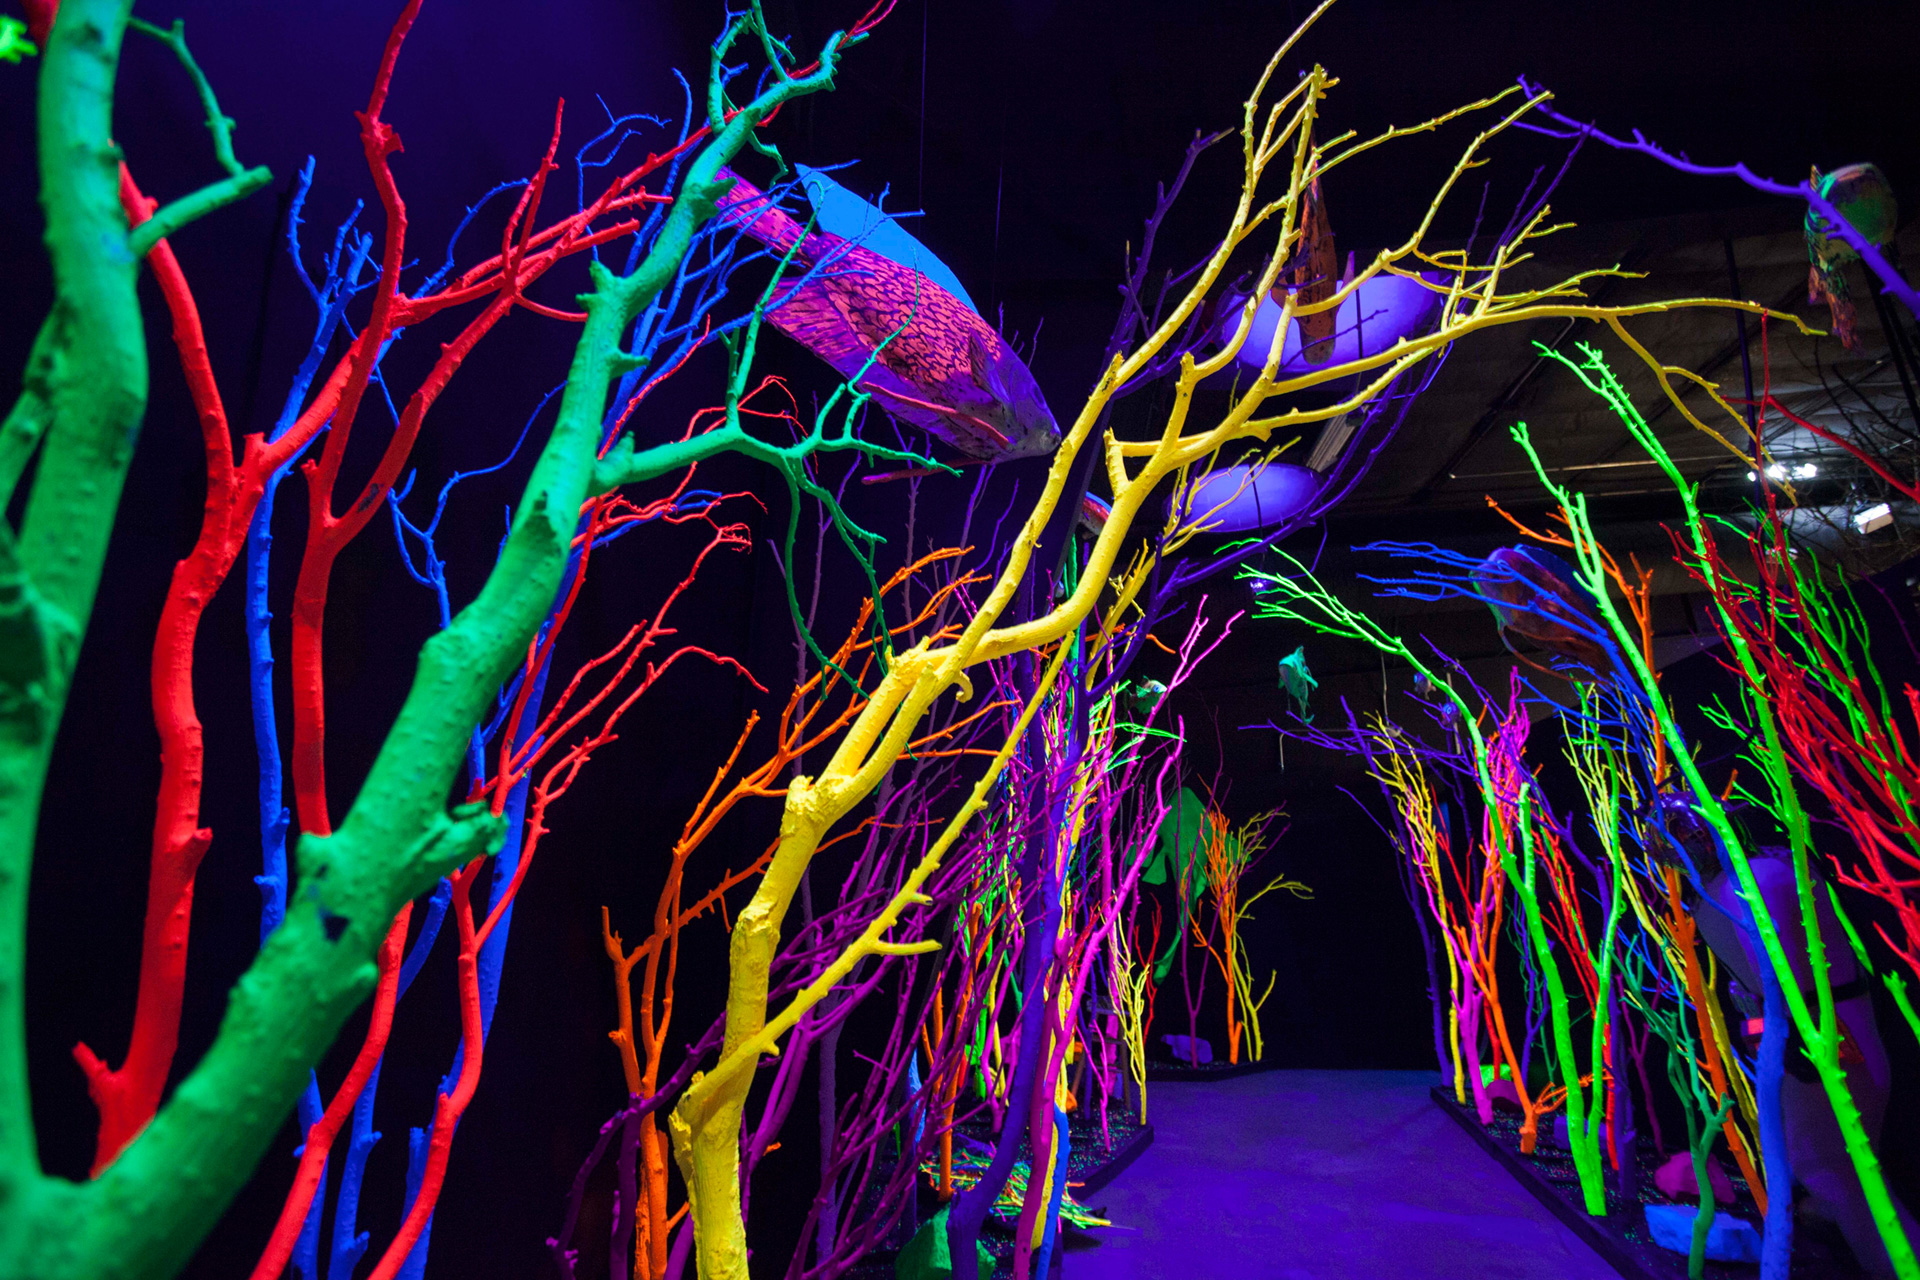 Meow Wolf creates immersive experience for visitors of all ages through their exhibits | Meow Wolf | STIRworld